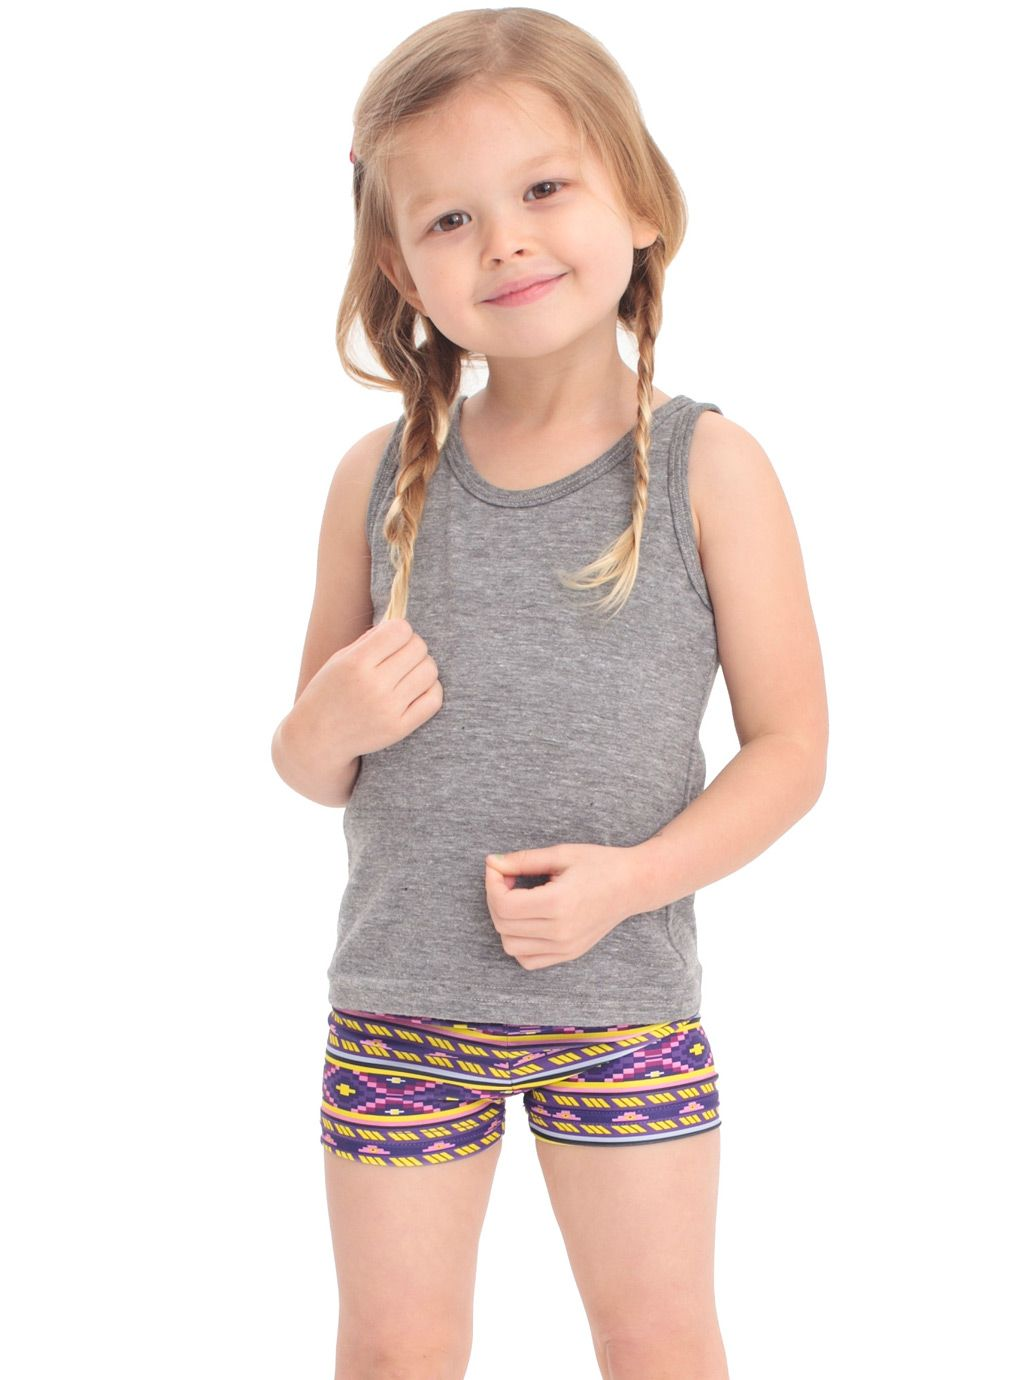 best little dance and gymnastics shorts for girls. kid style girl ...